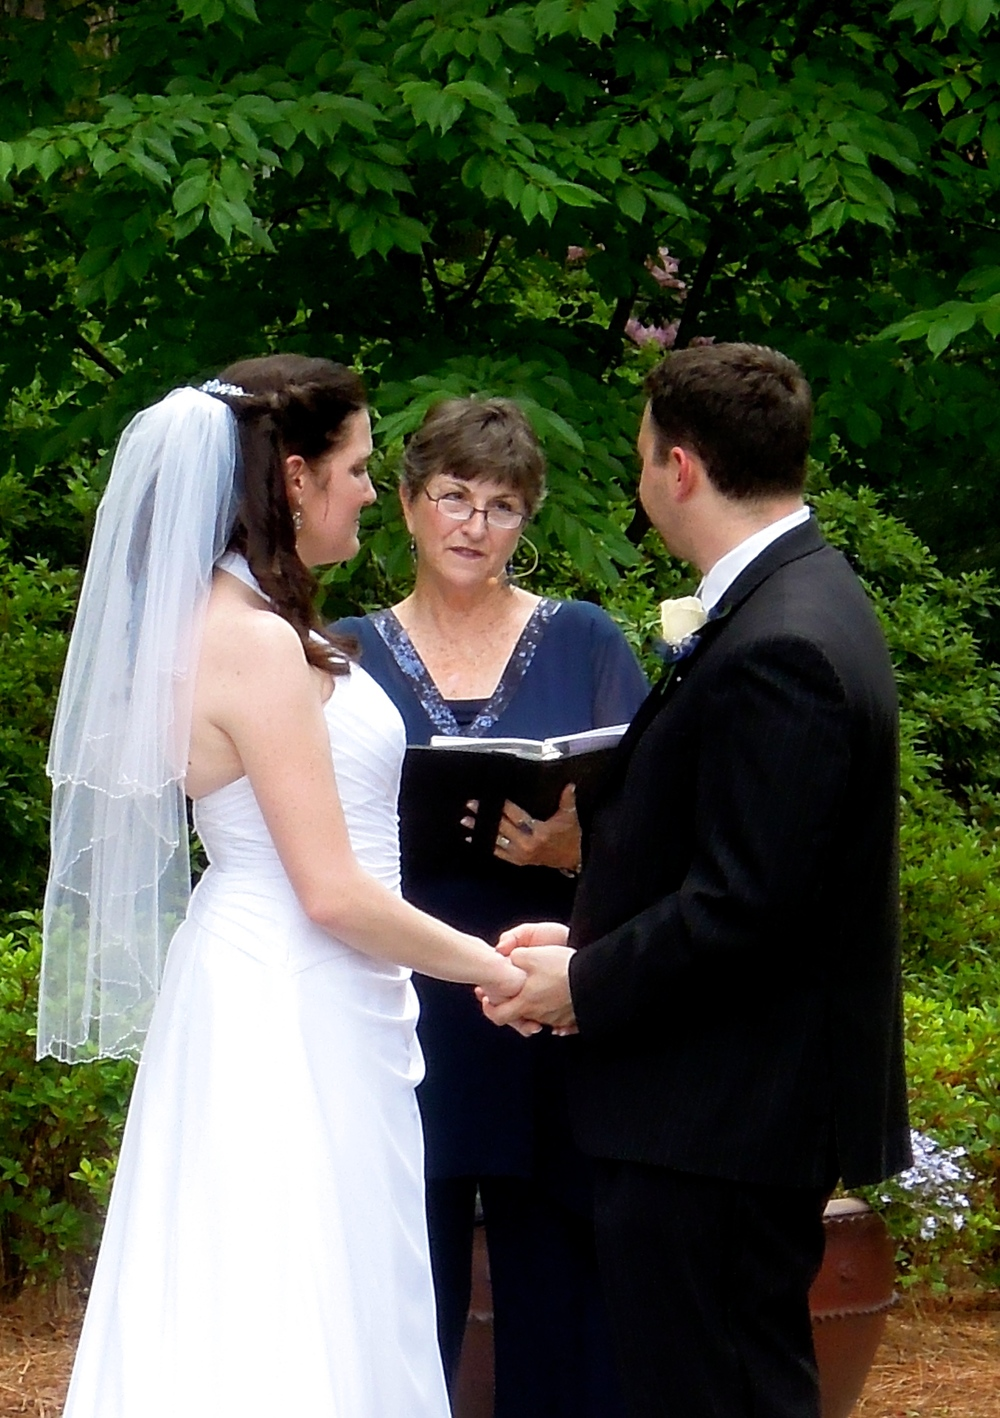 Wedding Ceremony at the WRAL Azalea Garden, Raleigh NC